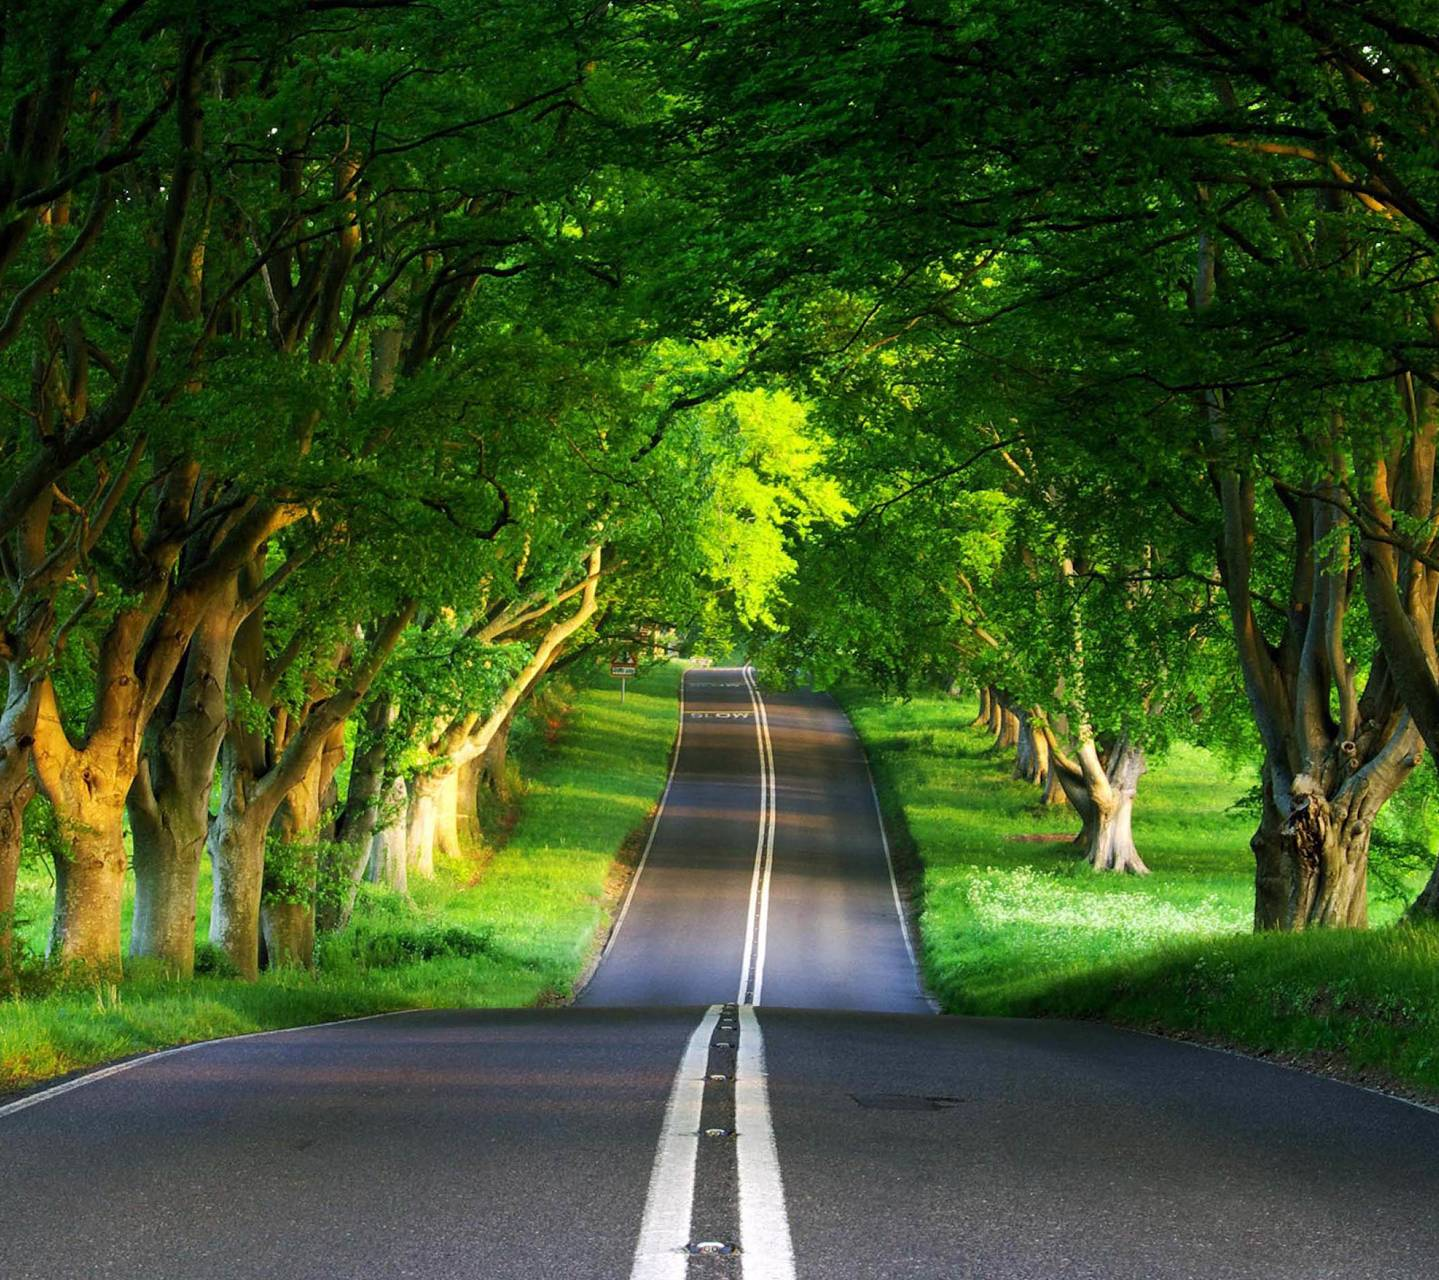 Long Road Of Nature